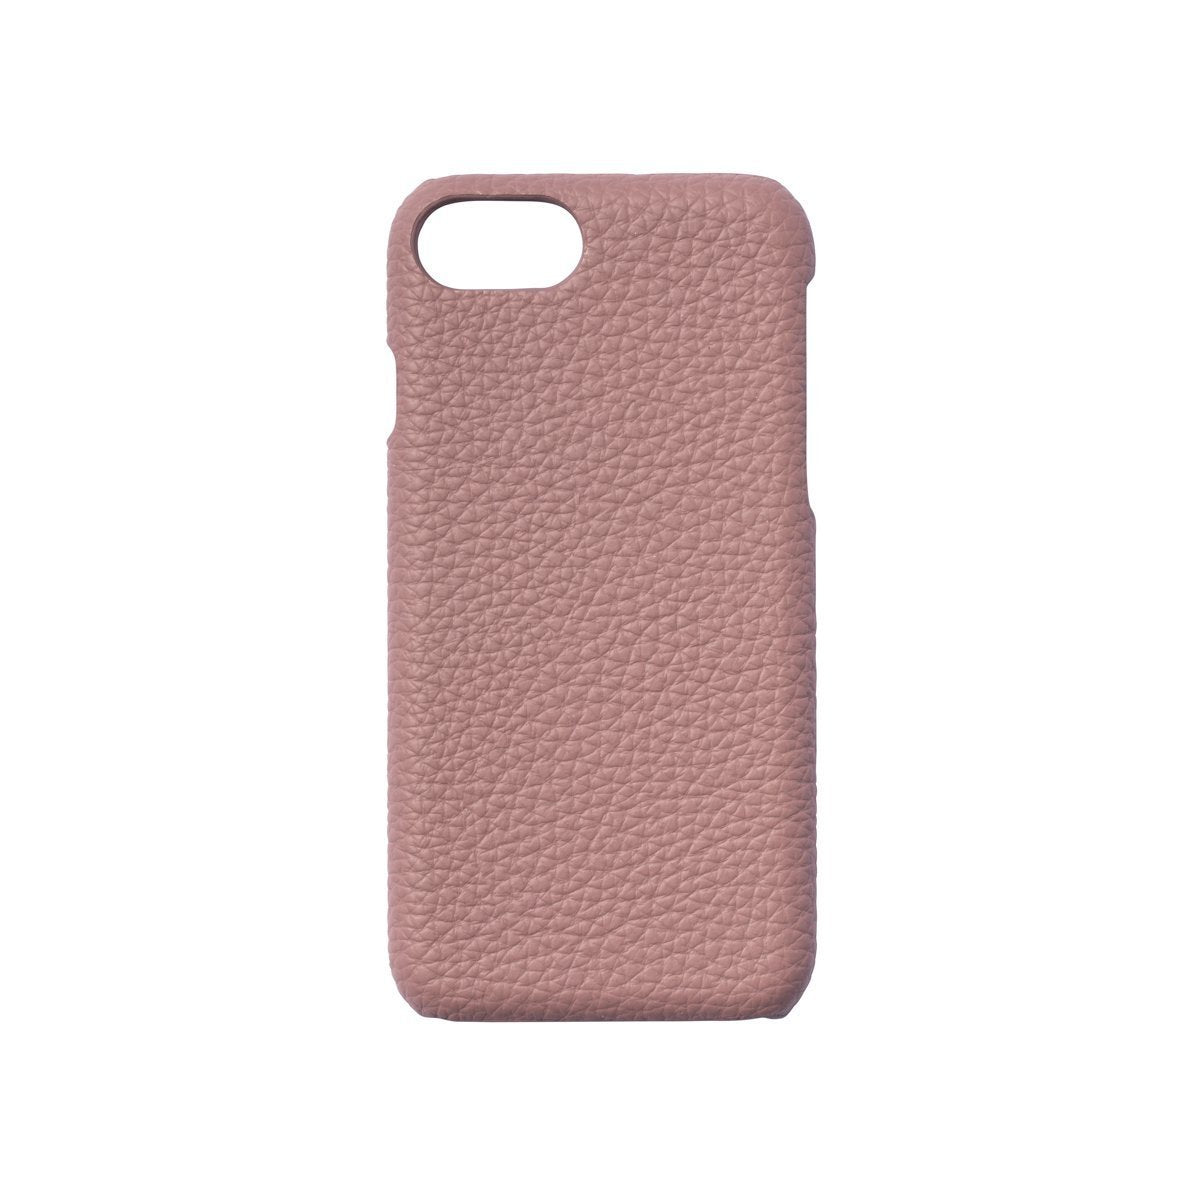 Mauve Pink Phone Case (6/6S/7/8)